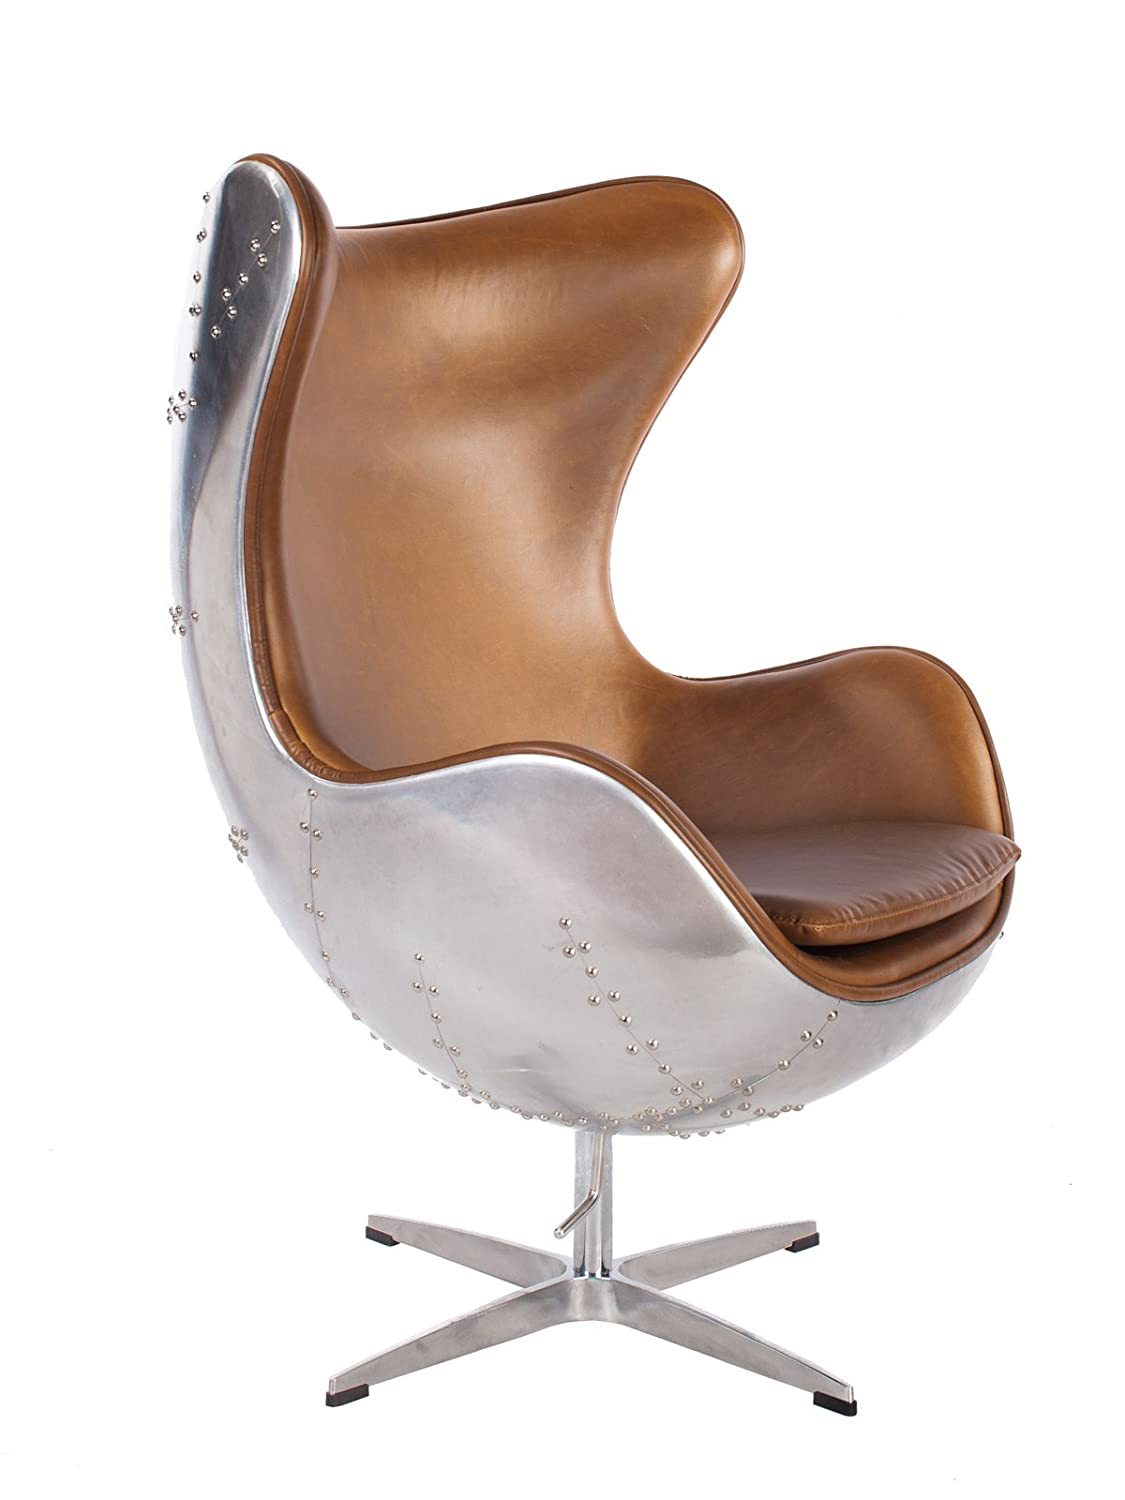 Midcentury style leather and aluminum egg chair.